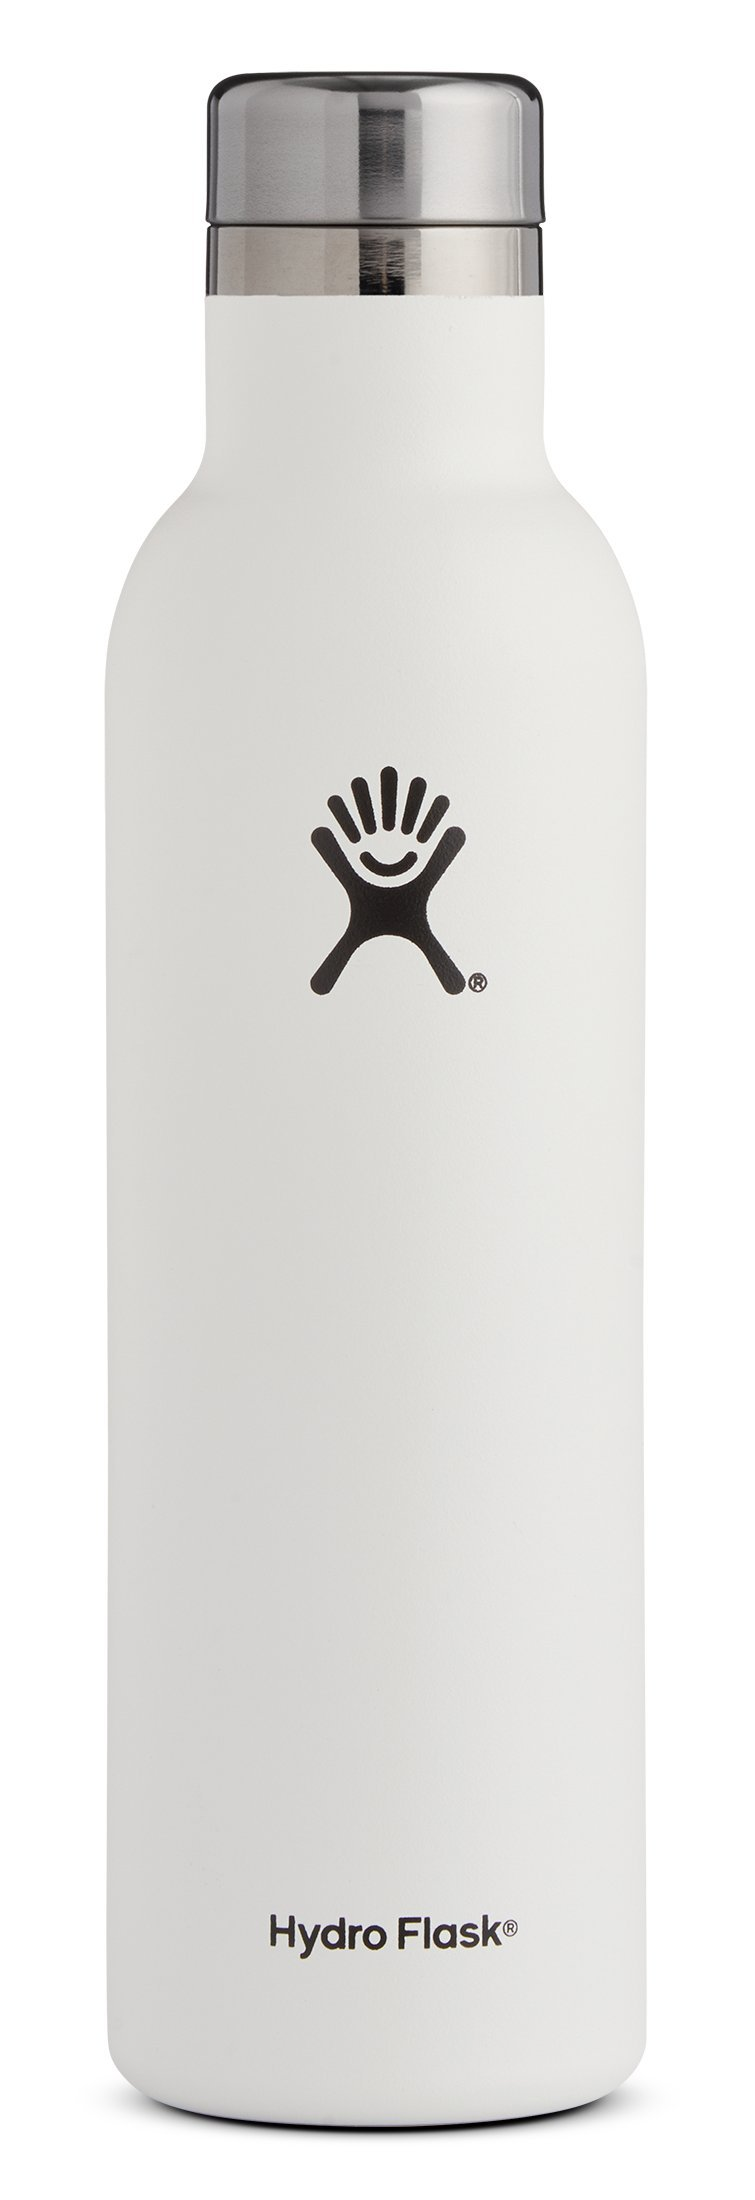 Hydro Flask 25 oz Double Wall Vacuum Insulated Stainless Steel Leak Proof Wine Bottle with BPA Free Cap, White by Hydro Flask (Image #1)